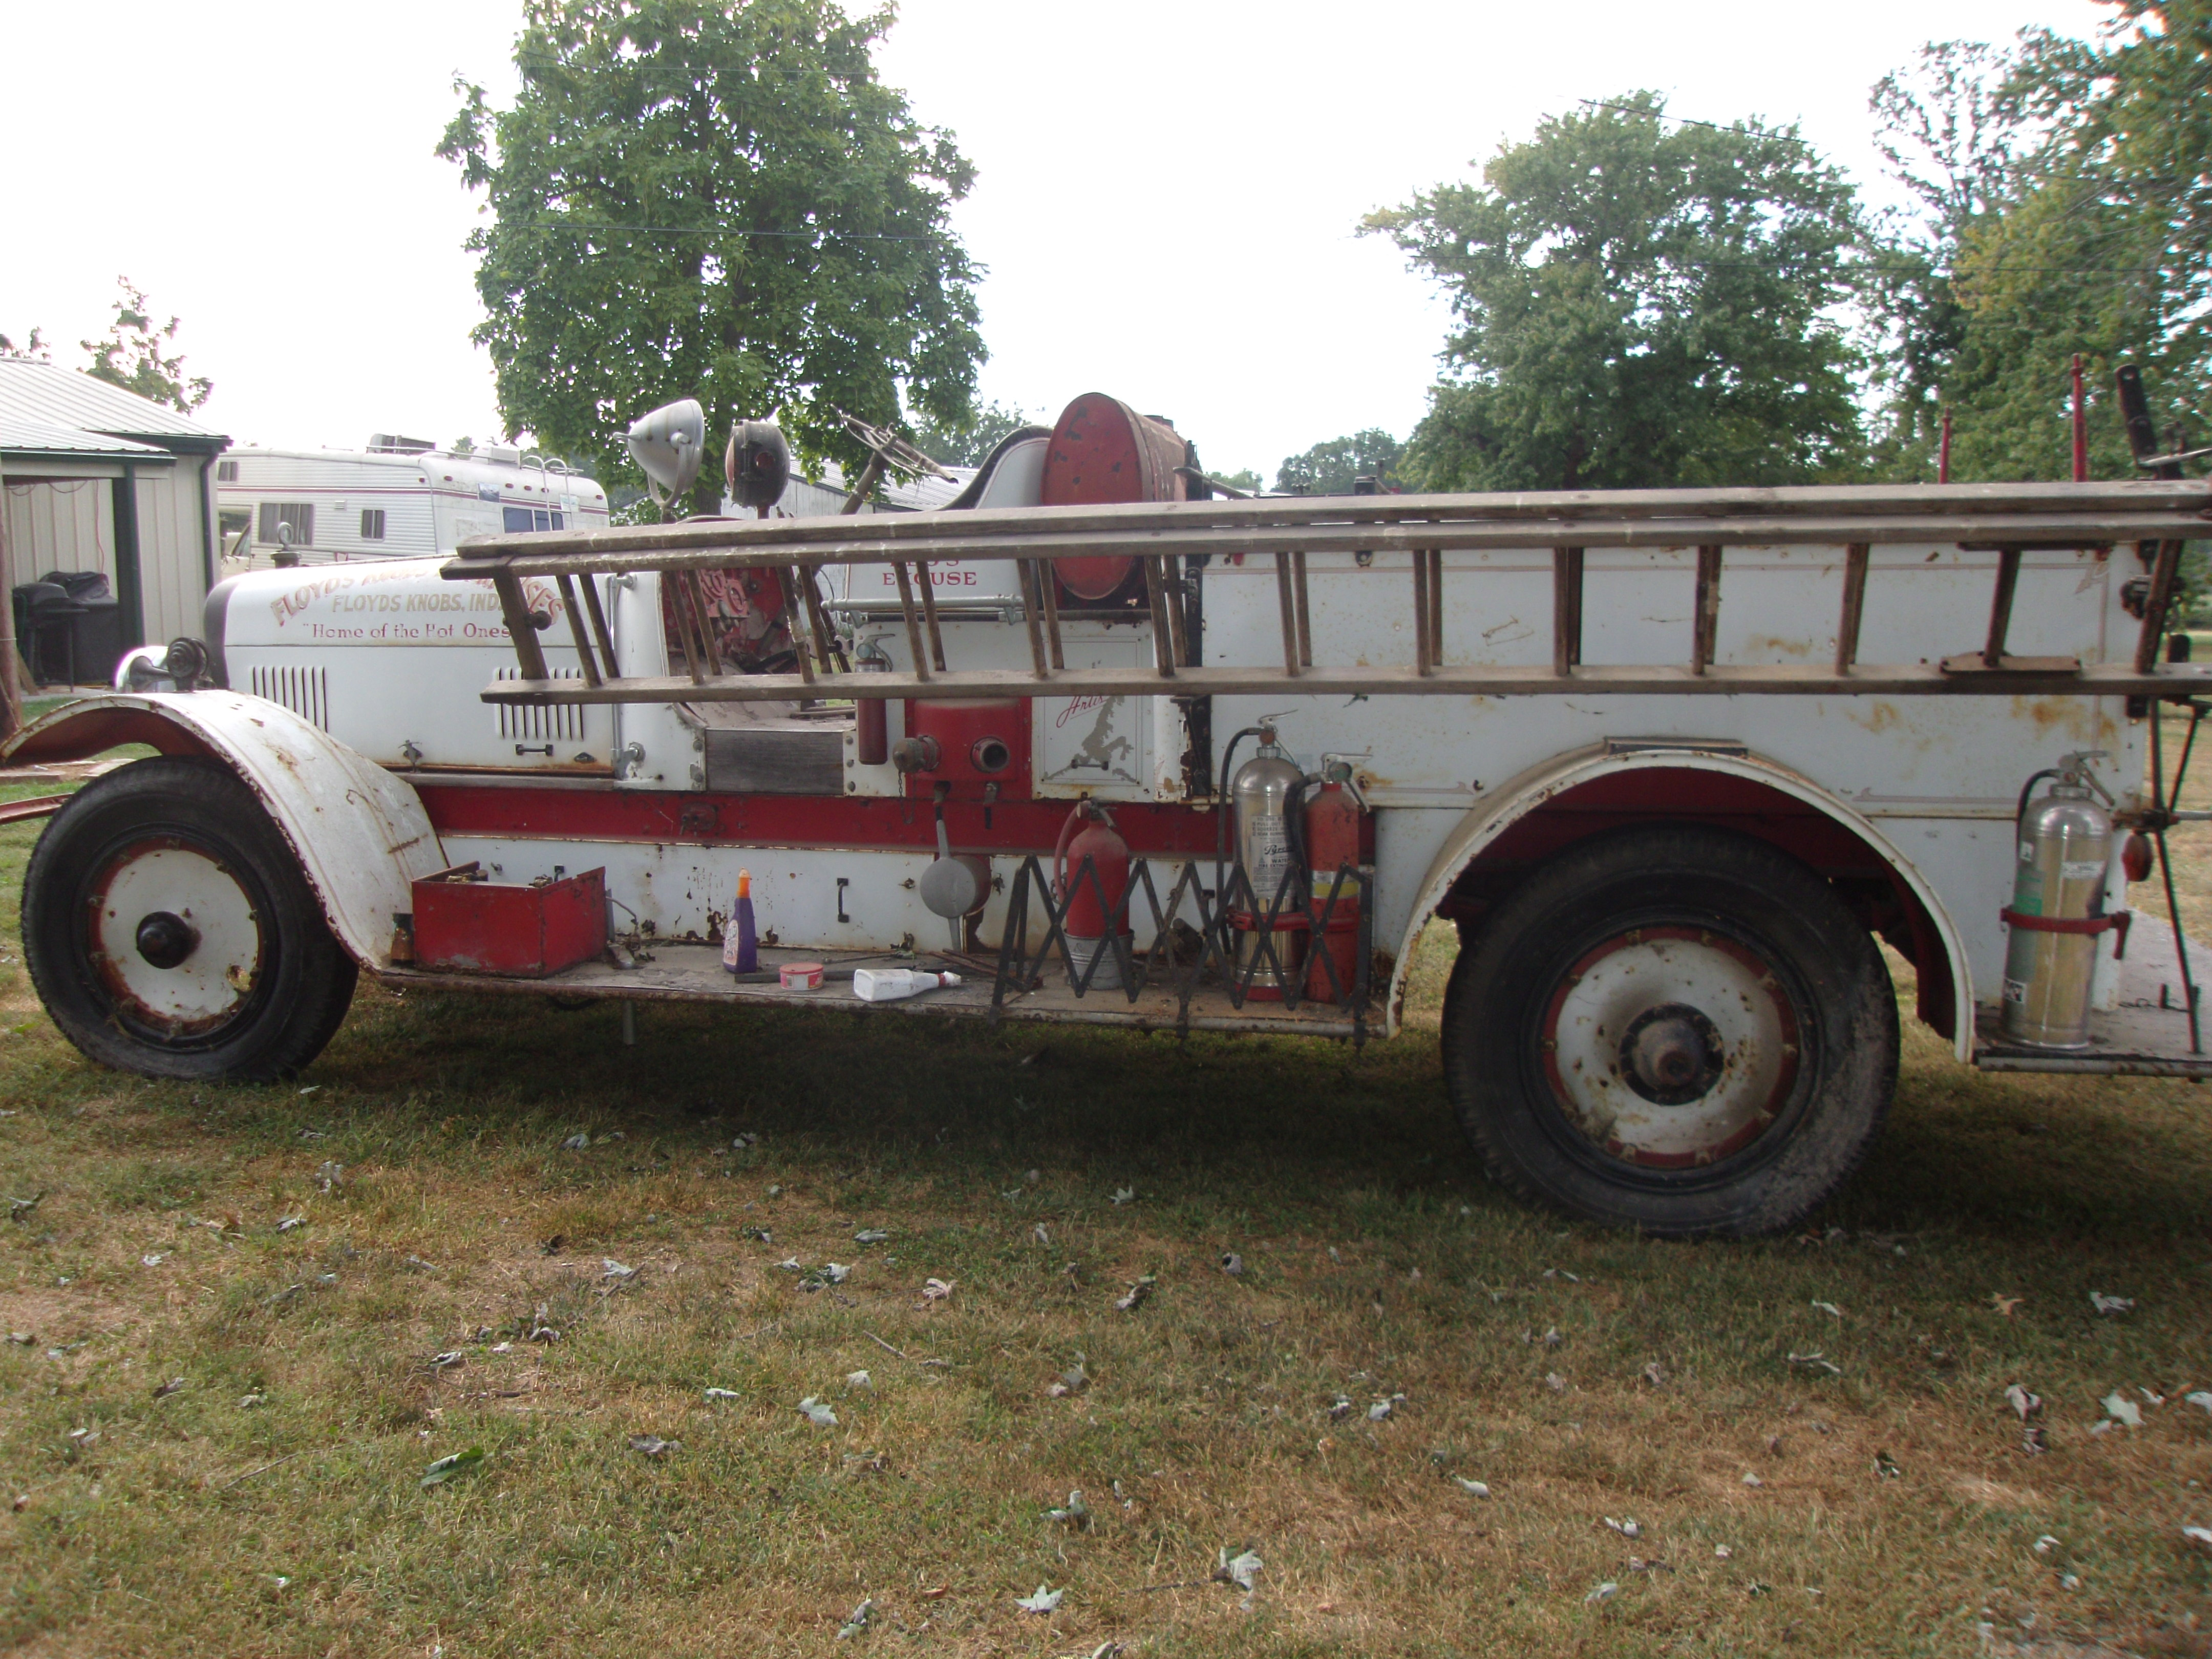 Best place to sell 1925 Firetruck. - The eBay Community